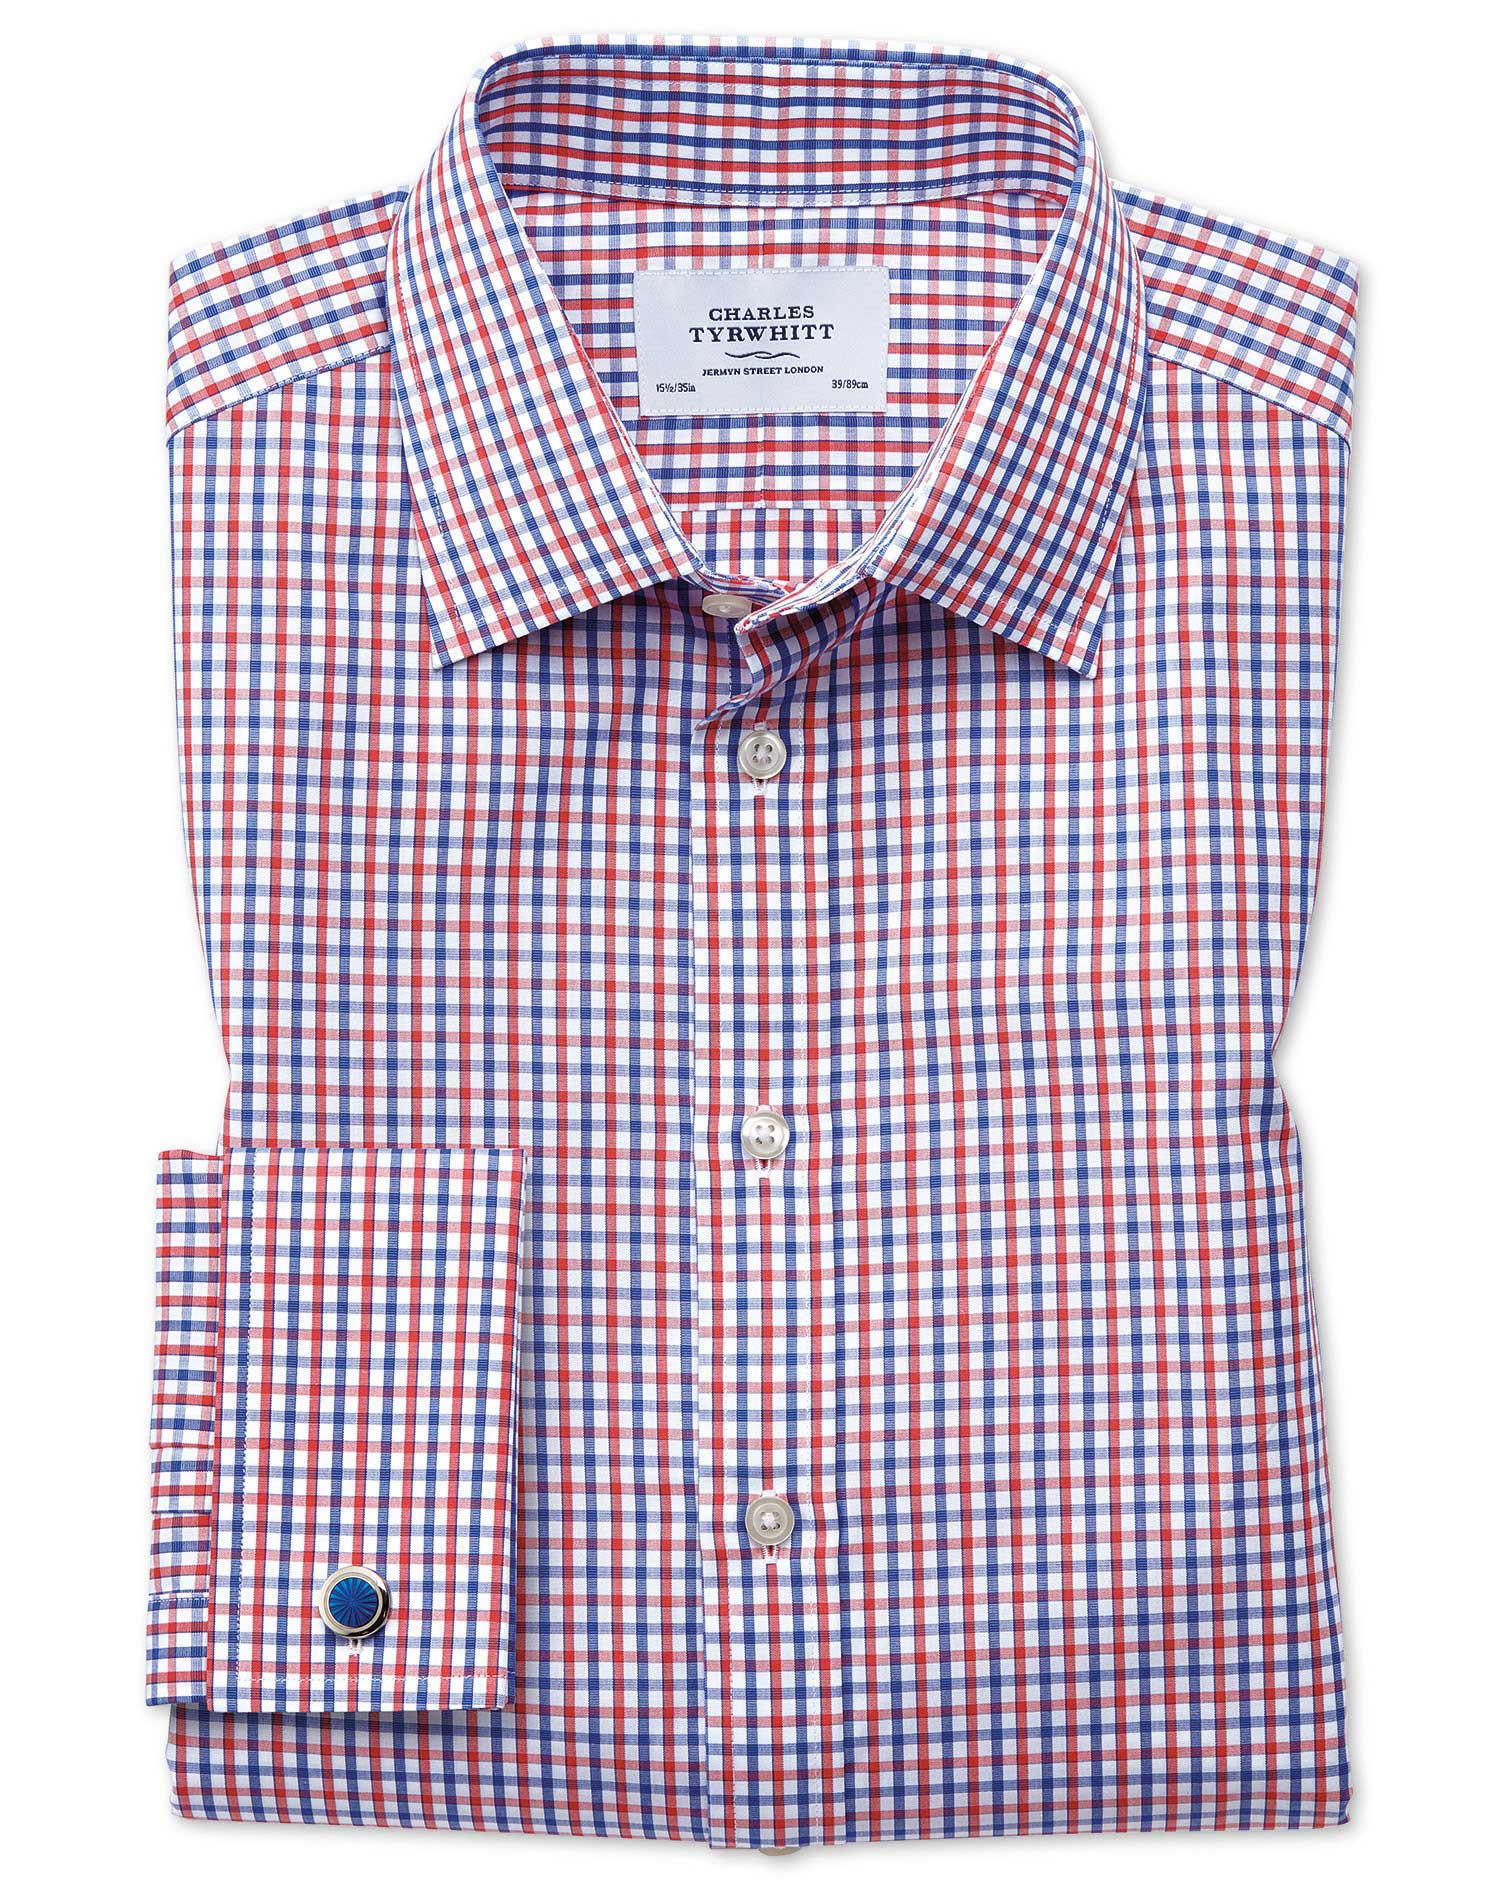 Classic Fit Two Colour Check Red and Blue Cotton Formal Shirt Single Cuff Size 17/36 by Charles Tyrw